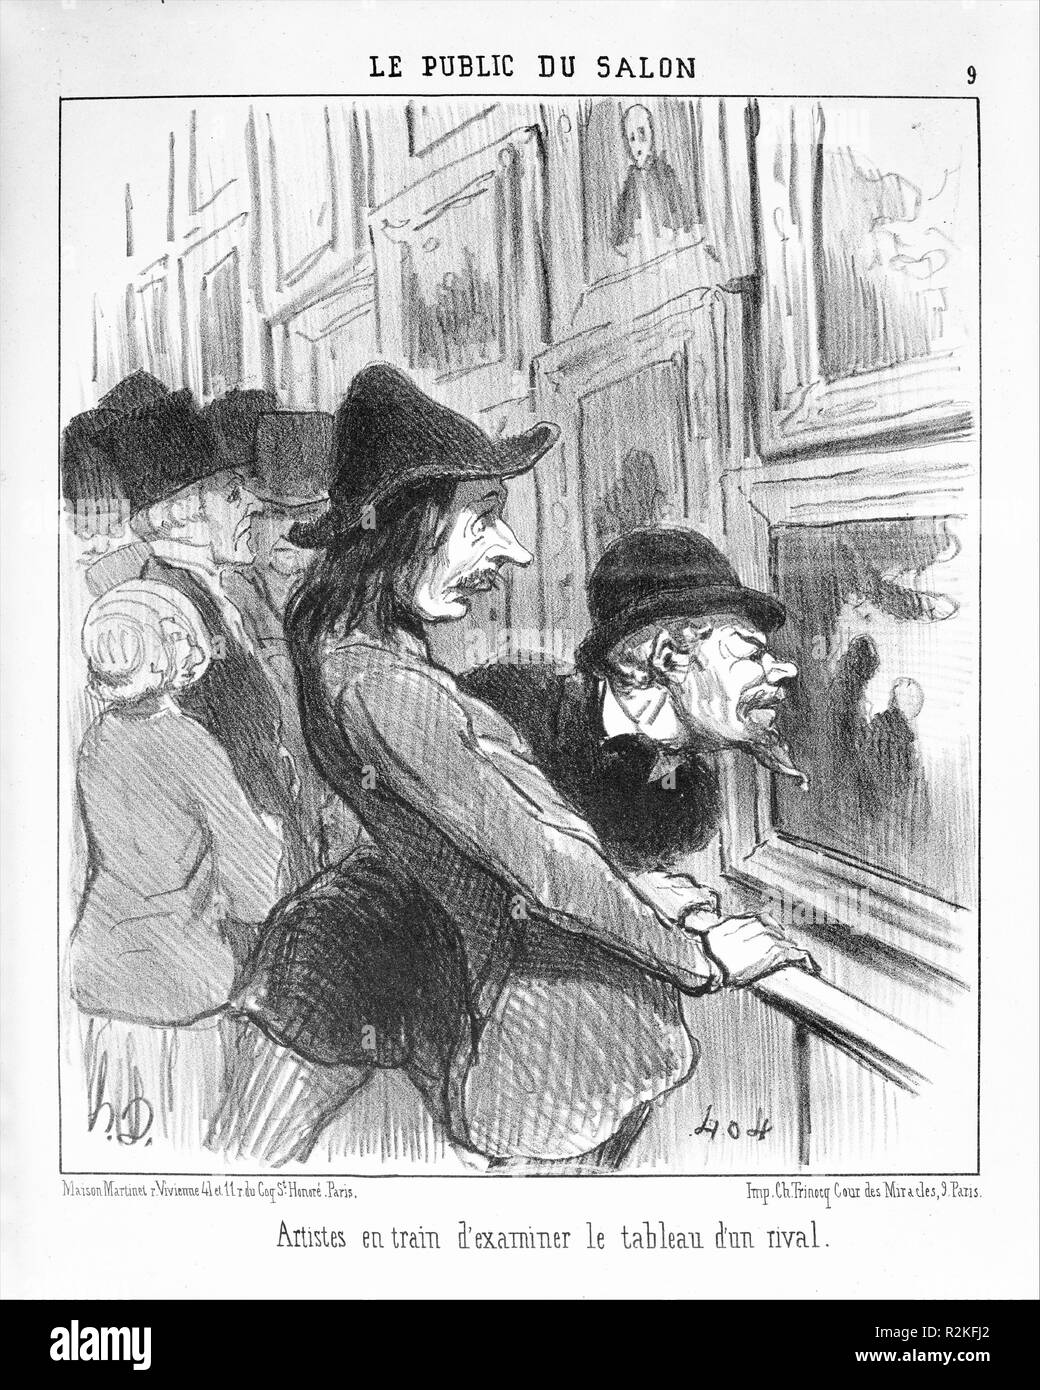 Artists Examining the Work of a Rival (Artistes en train d'examiner le tableau d'un rival), from Le Public du Salon, published in Le Charivari, May 14, 1852. Artist: Honoré Daumier (French, Marseilles 1808-1879 Valmondois). Dimensions: Sheet: 14 1/16 × 10 5/8 in. (35.7 × 27 cm)  Image: 9 13/16 × 8 7/16 in. (25 × 21.4 cm). Printer: Aaron Martinet (French, 1762-1841). Publisher: Charles Trinocq (Paris). Series/Portfolio: Le Public du Salon. Date: May 14, 1852. Museum: Metropolitan Museum of Art, New York, USA. - Stock Image